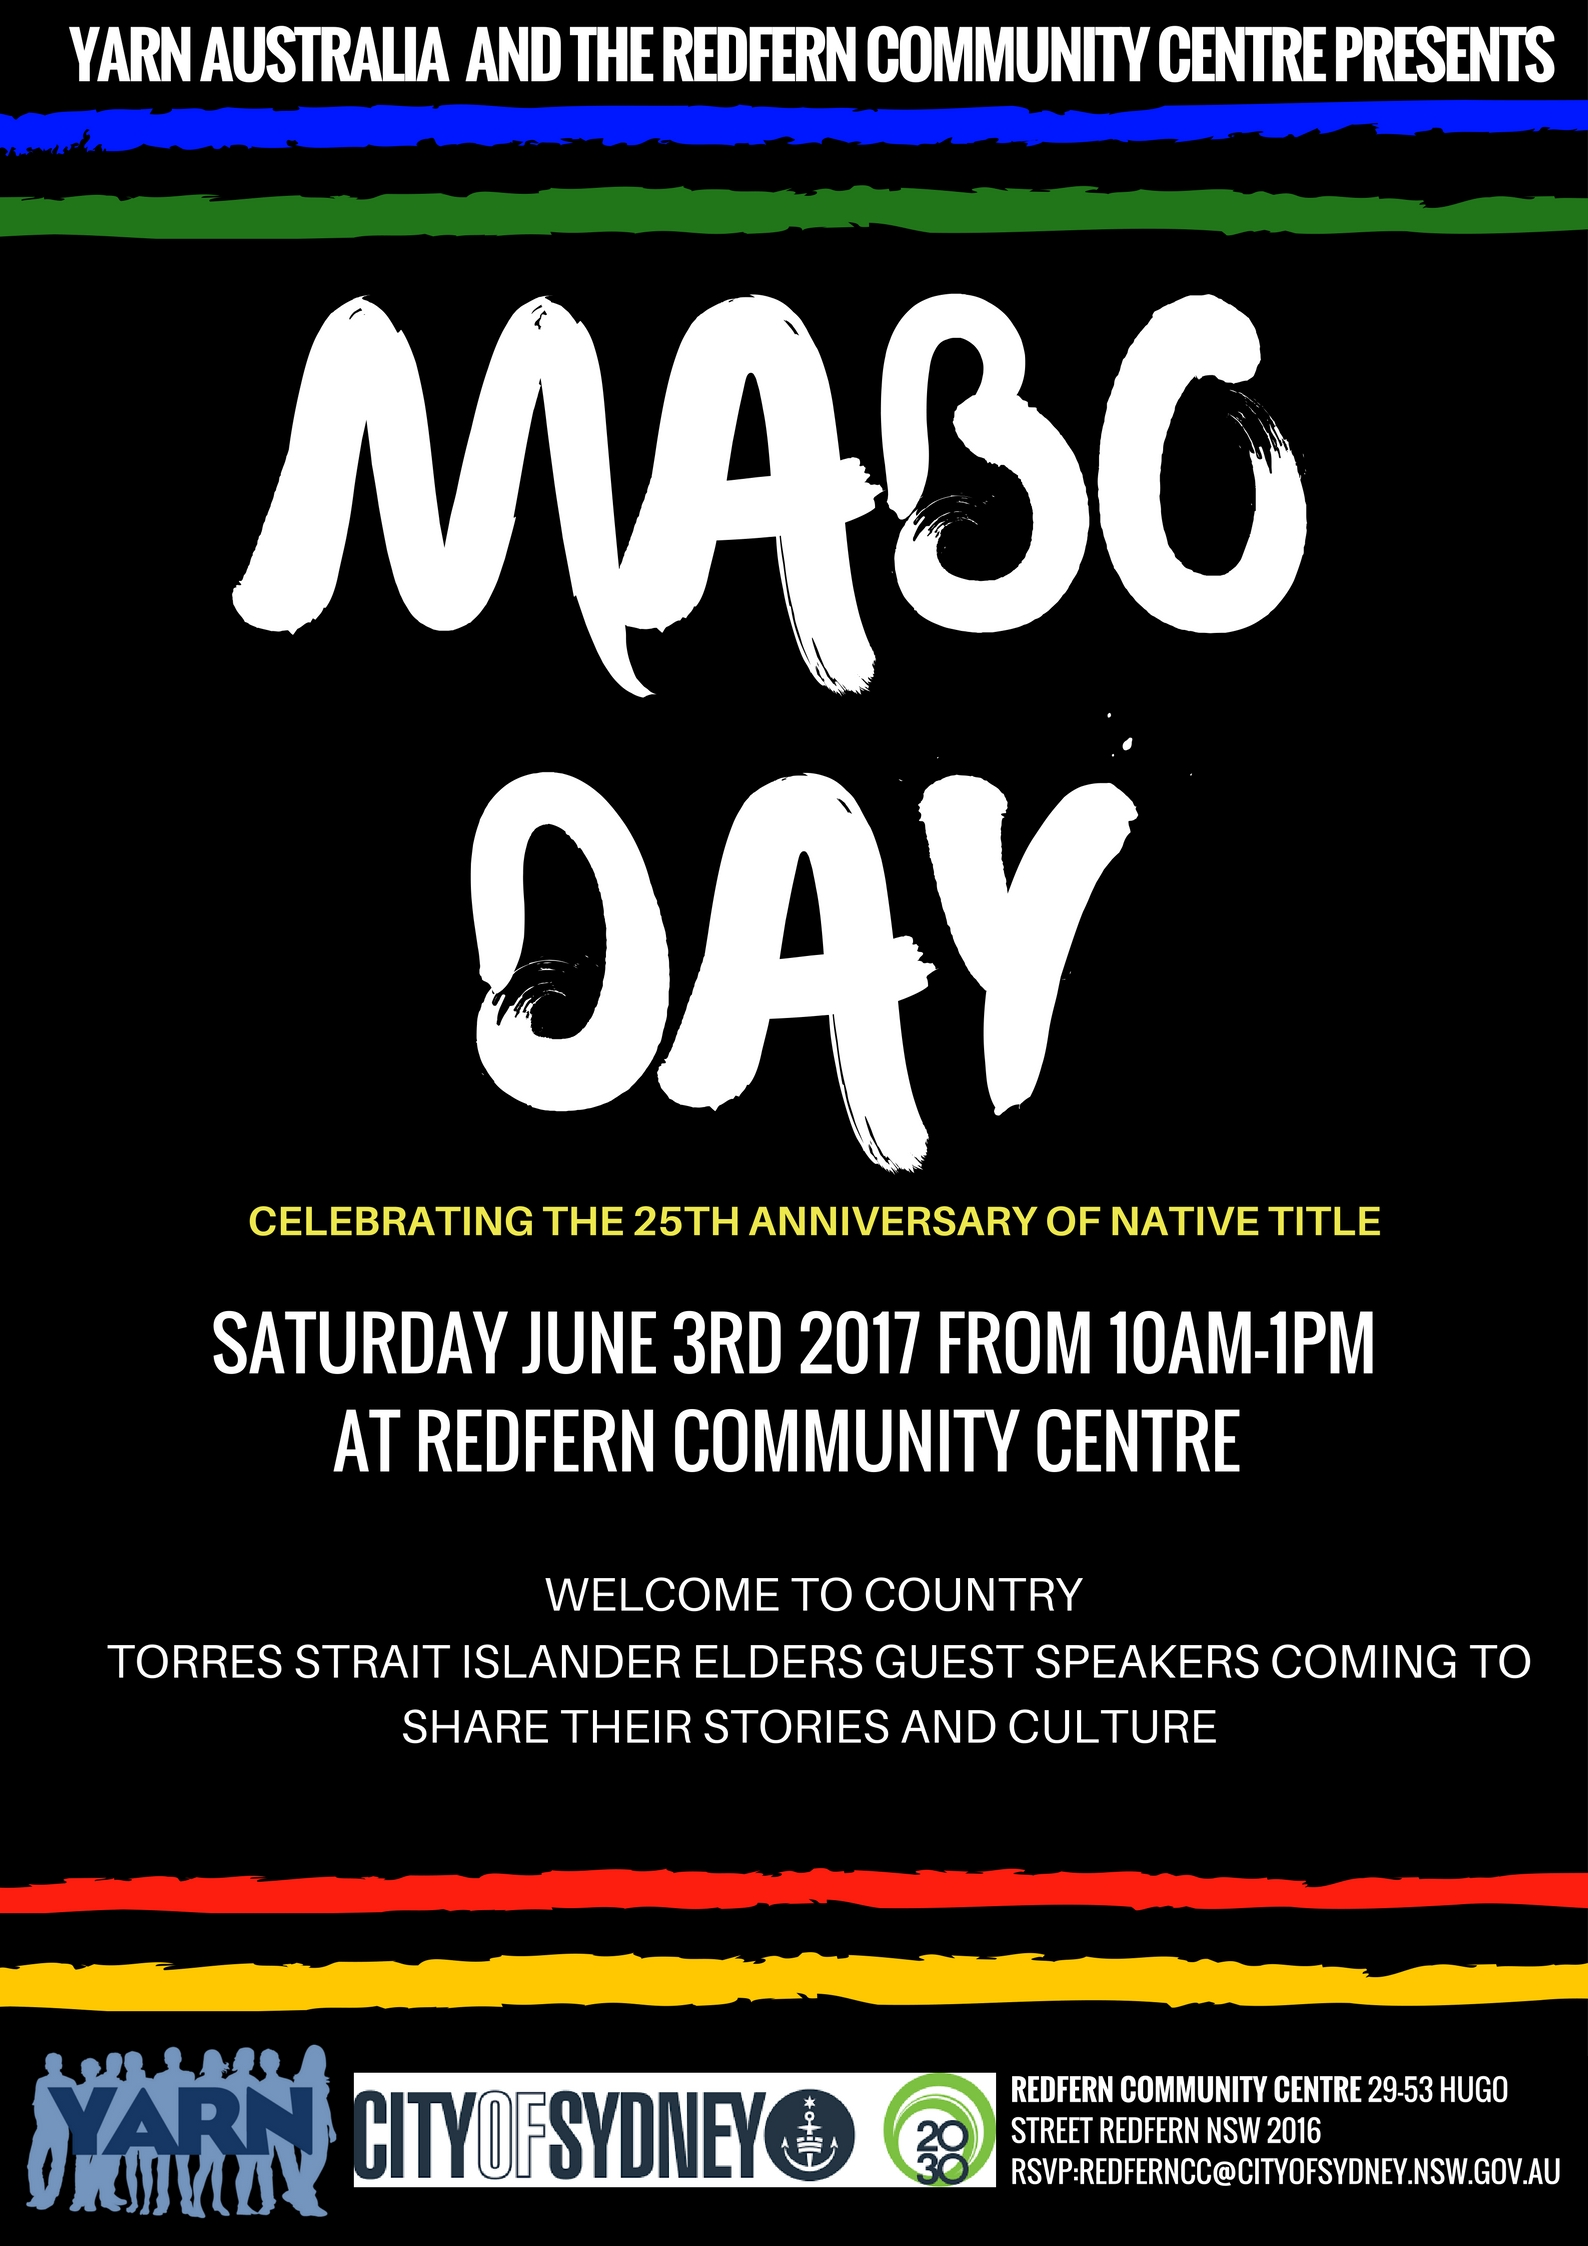 2017 JUNE 3RD YARN Australia Partners with City of Sydney Redfern Community to Commemorate Mabo Day